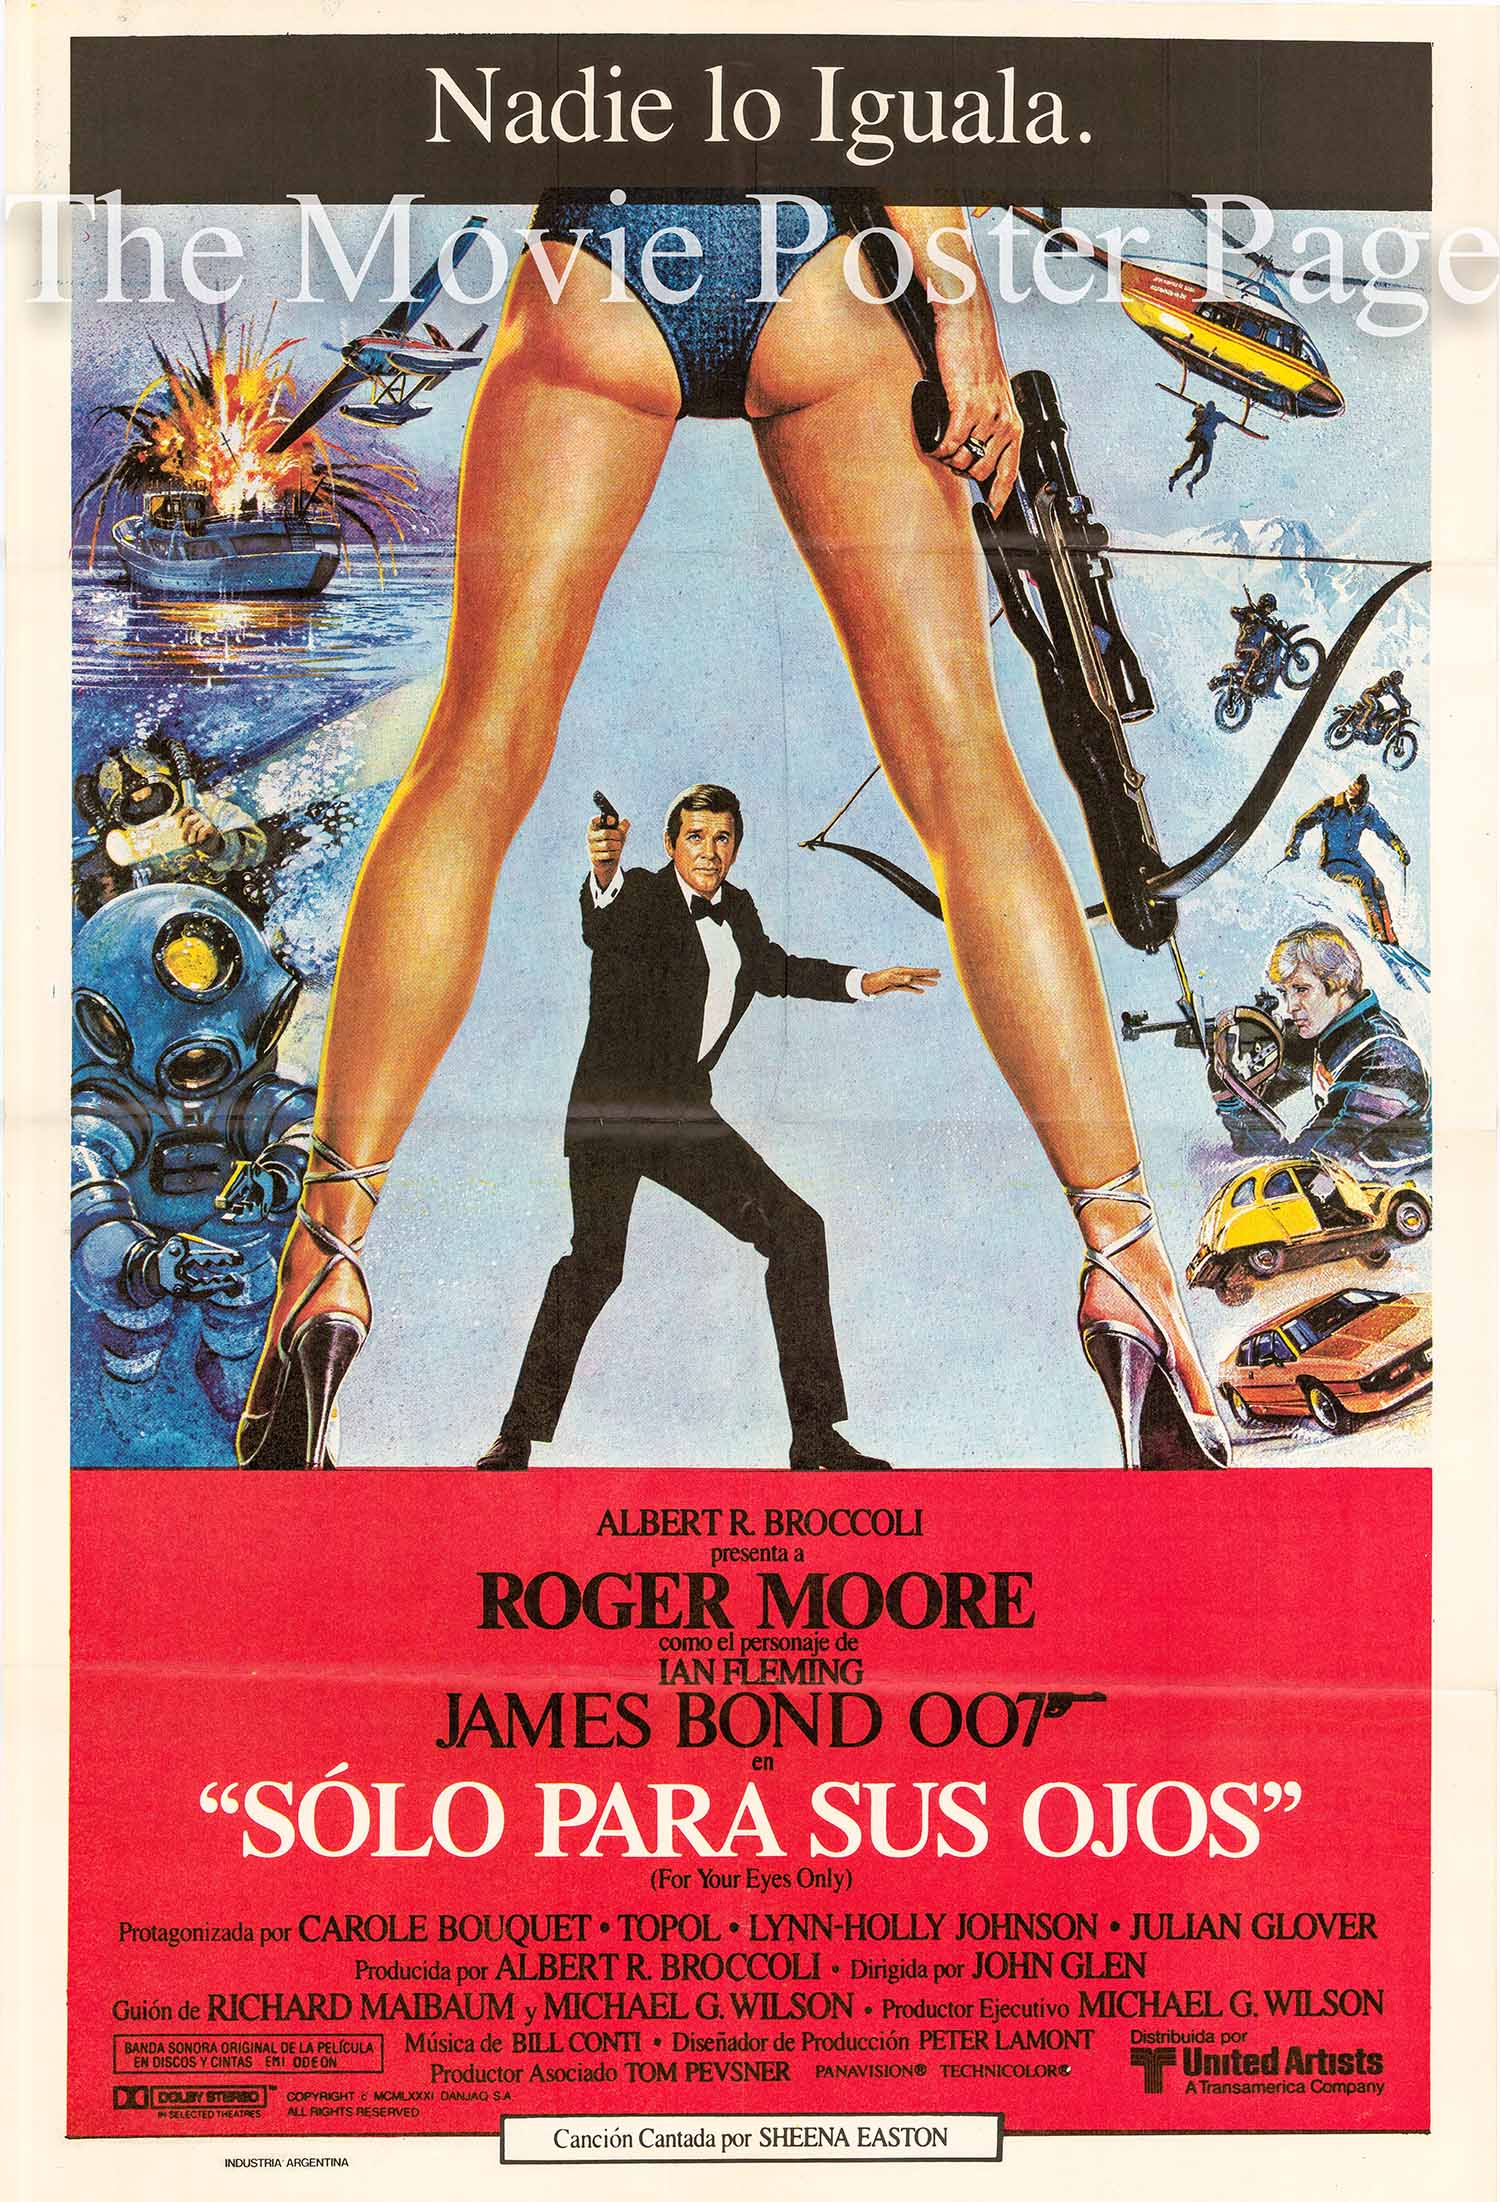 Pictured is an Argentine poster made to promote the 1981 John Glen film For Your Eyes Only starring Roger Moore.